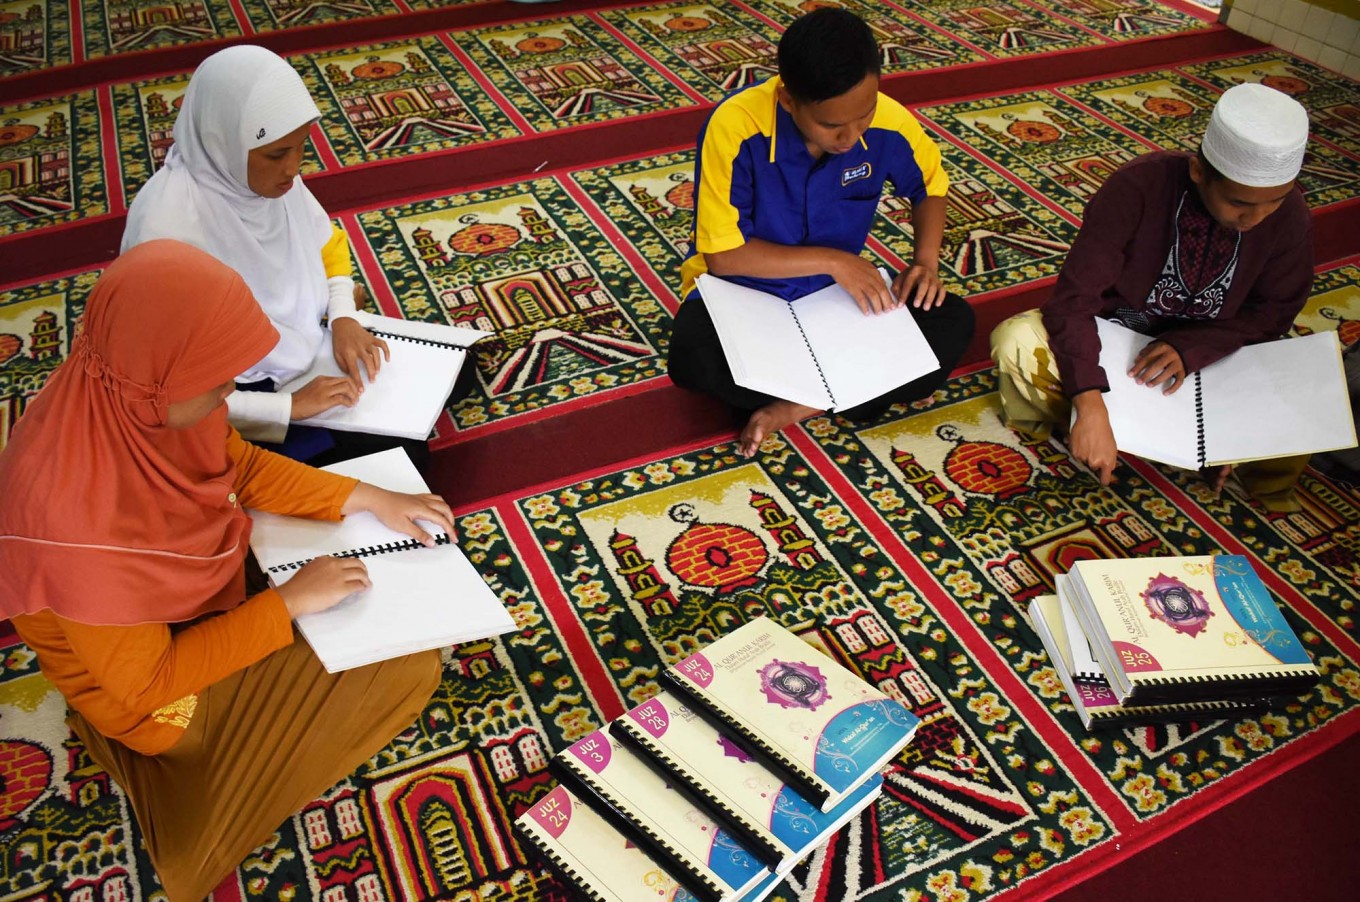 Blind worshipers learn to read the Quran in braille at An Nur Mosque in the Rehabilitation Center for the Blind in Janti, Malang, East Java. JP/Aman Rochman